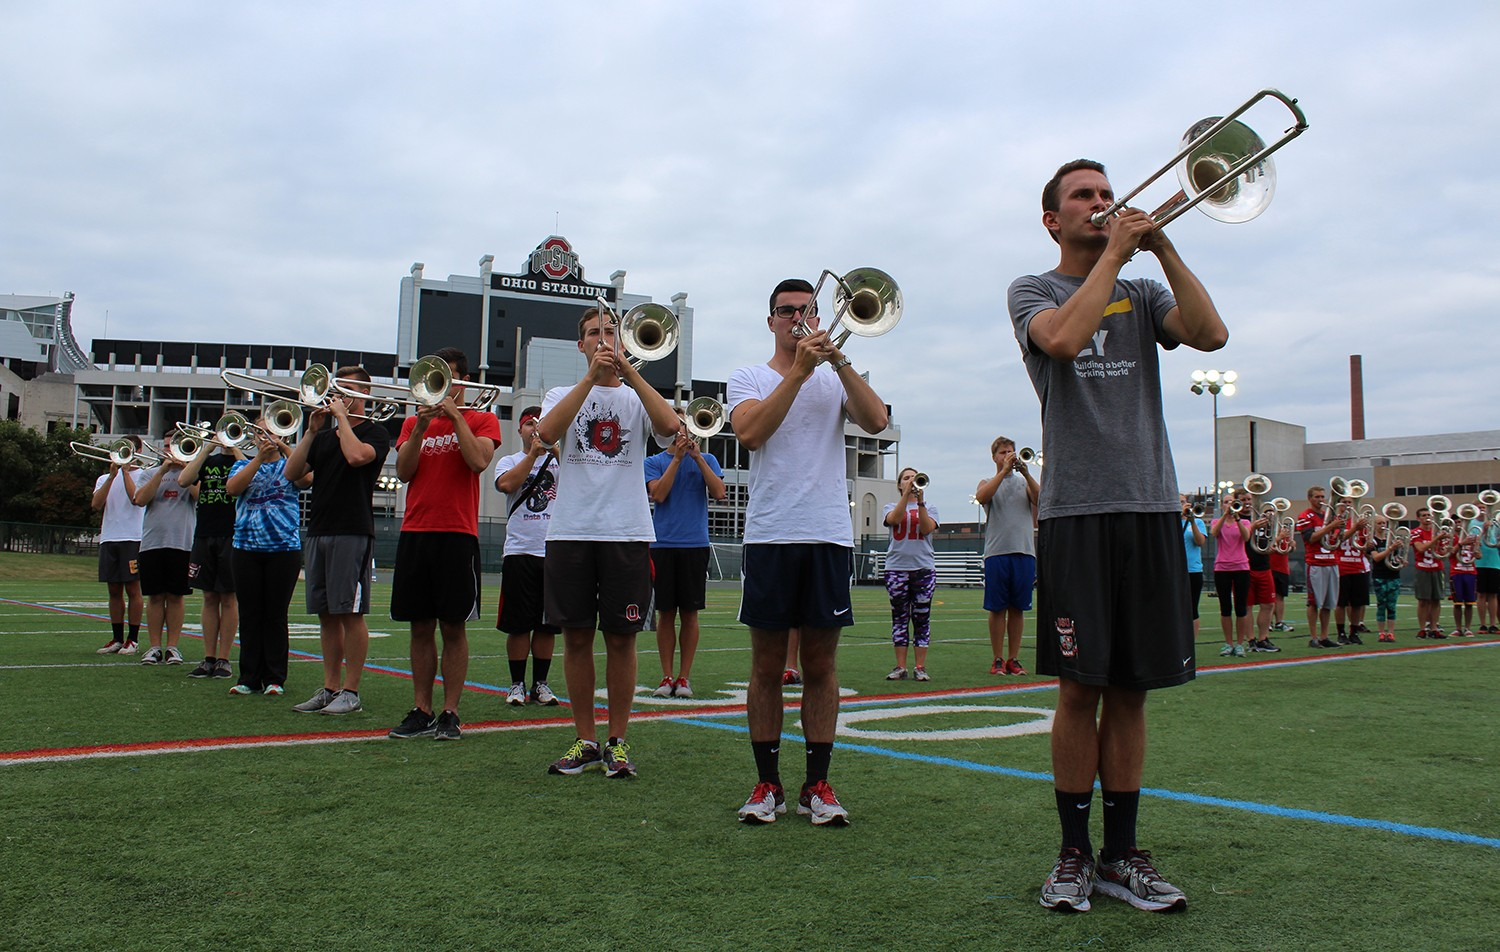 Members of the OSU Marching Band practice on August 26 at Lincoln Tower Park. Credit: Michael Huson / Campus Editor